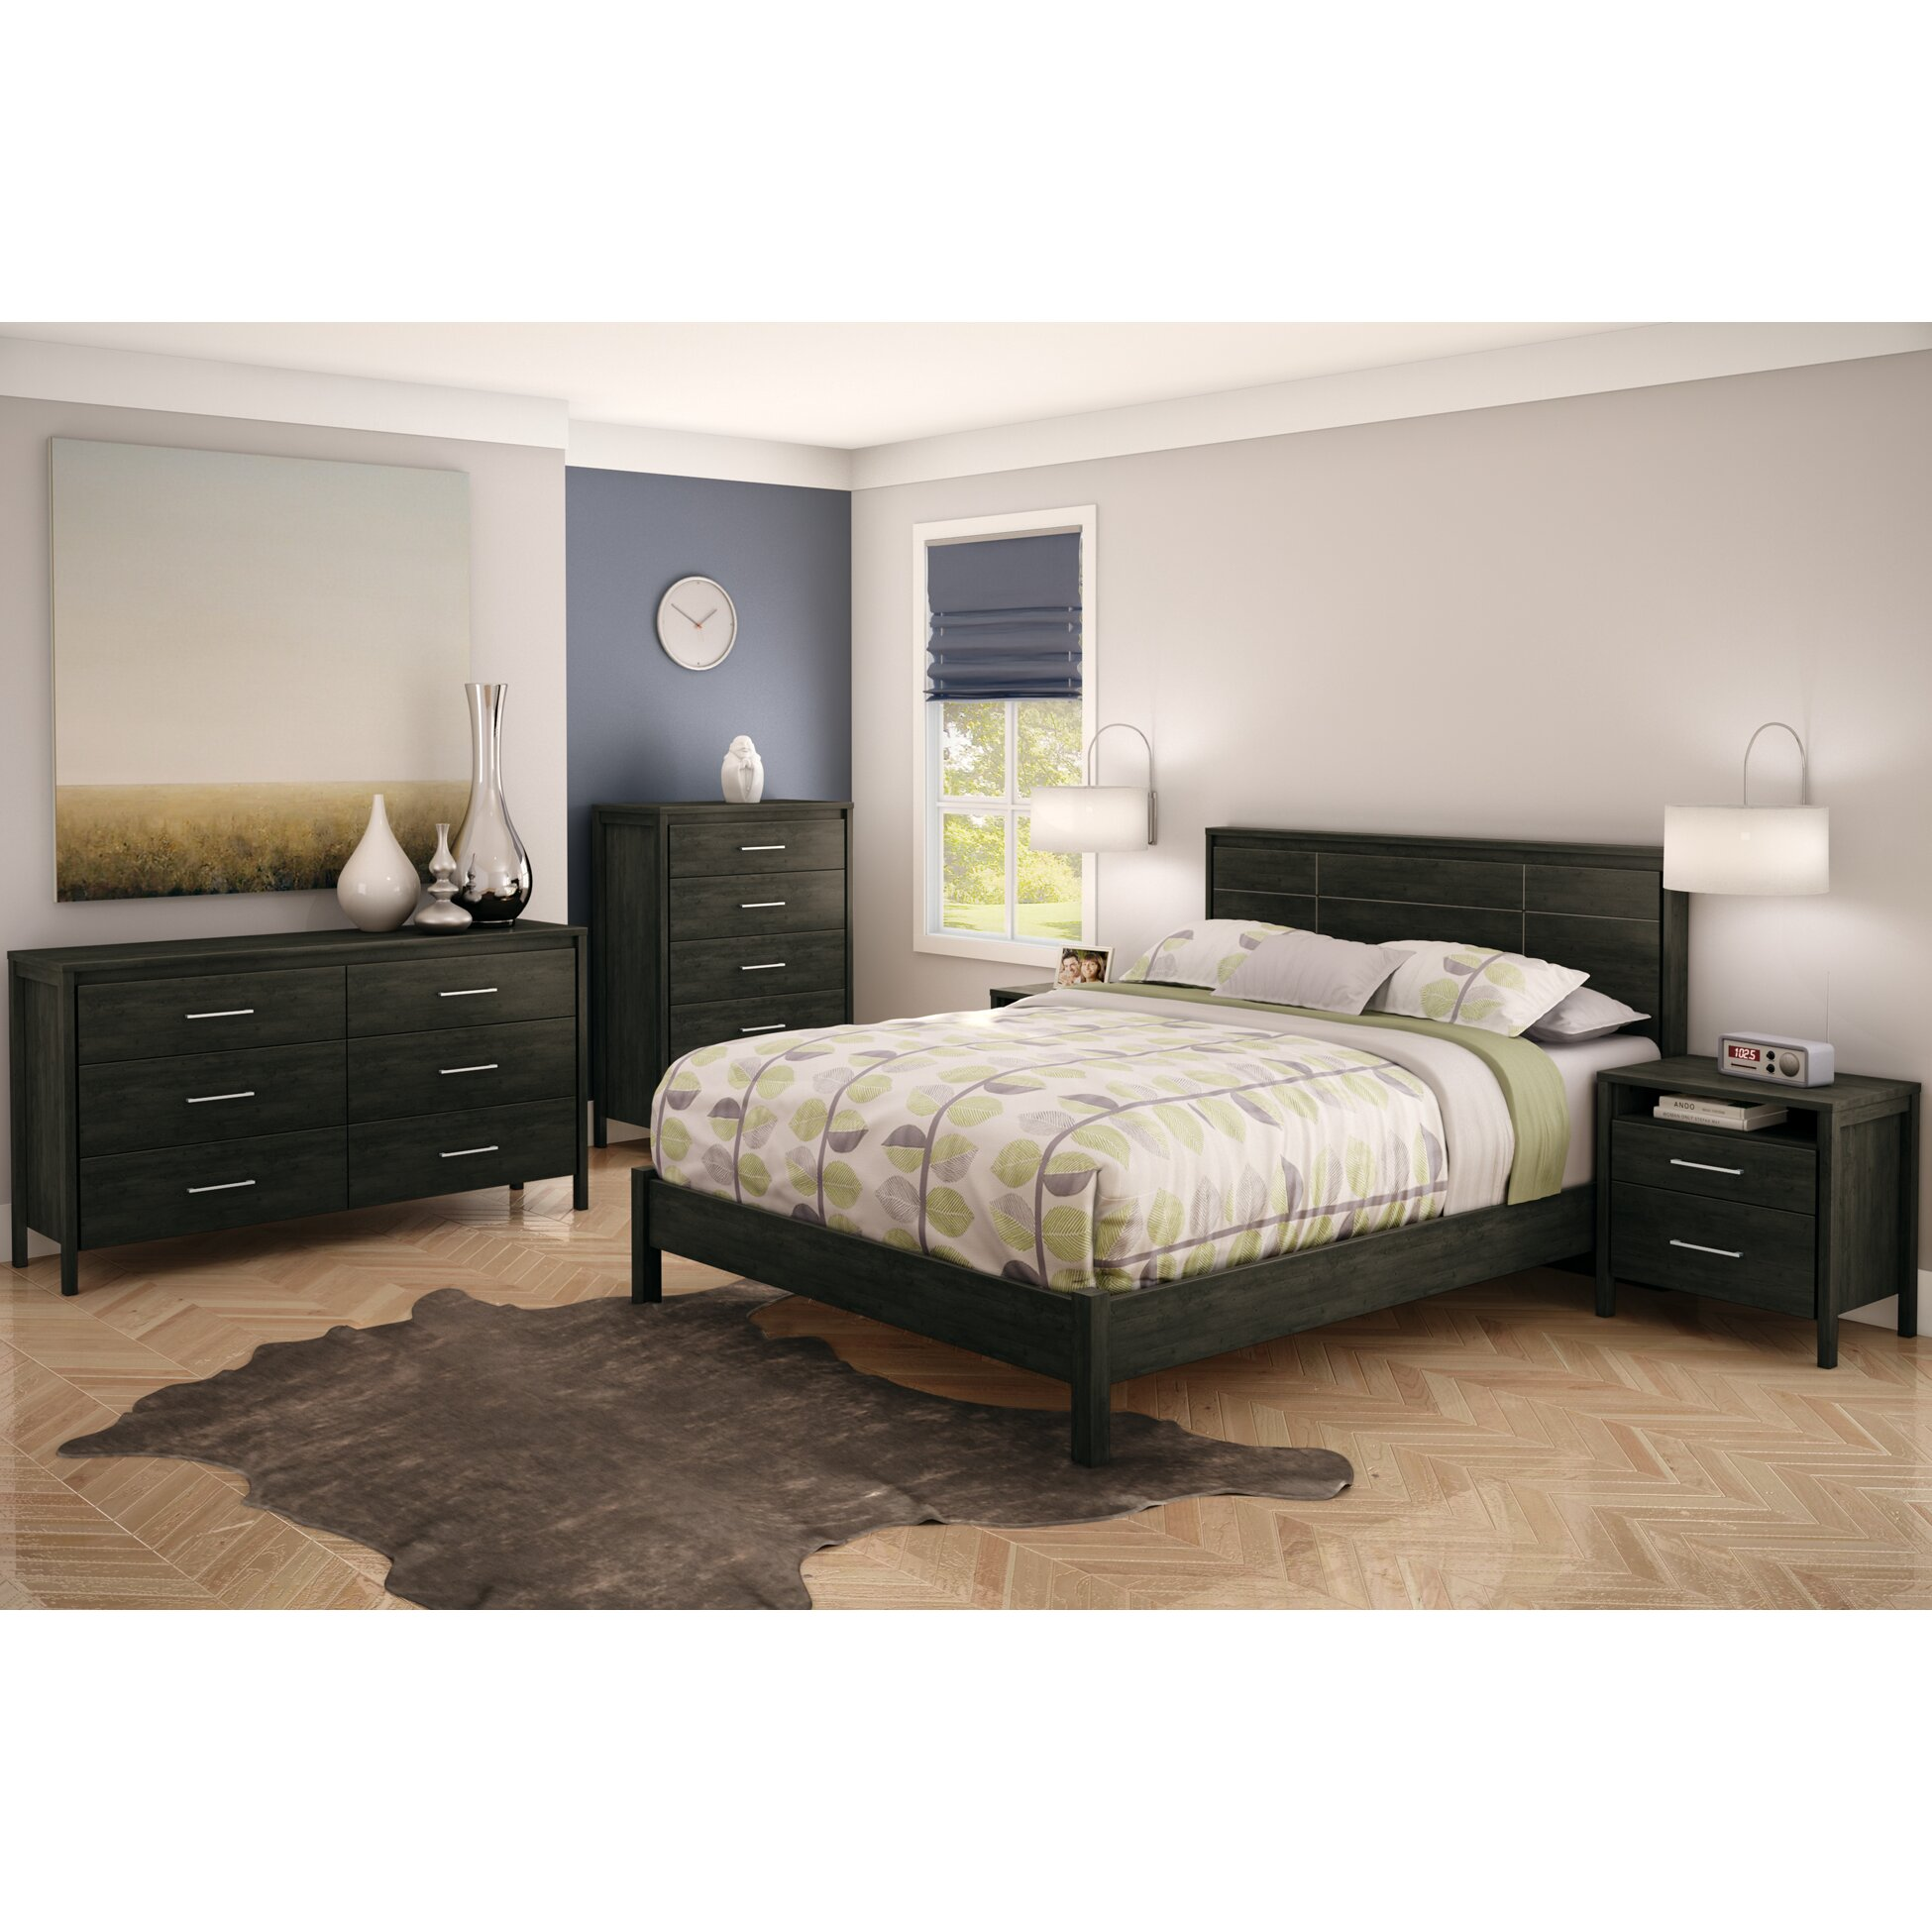 South Shore Gravity Queen Platform Customizable Bedroom Set Reviews Wayfair